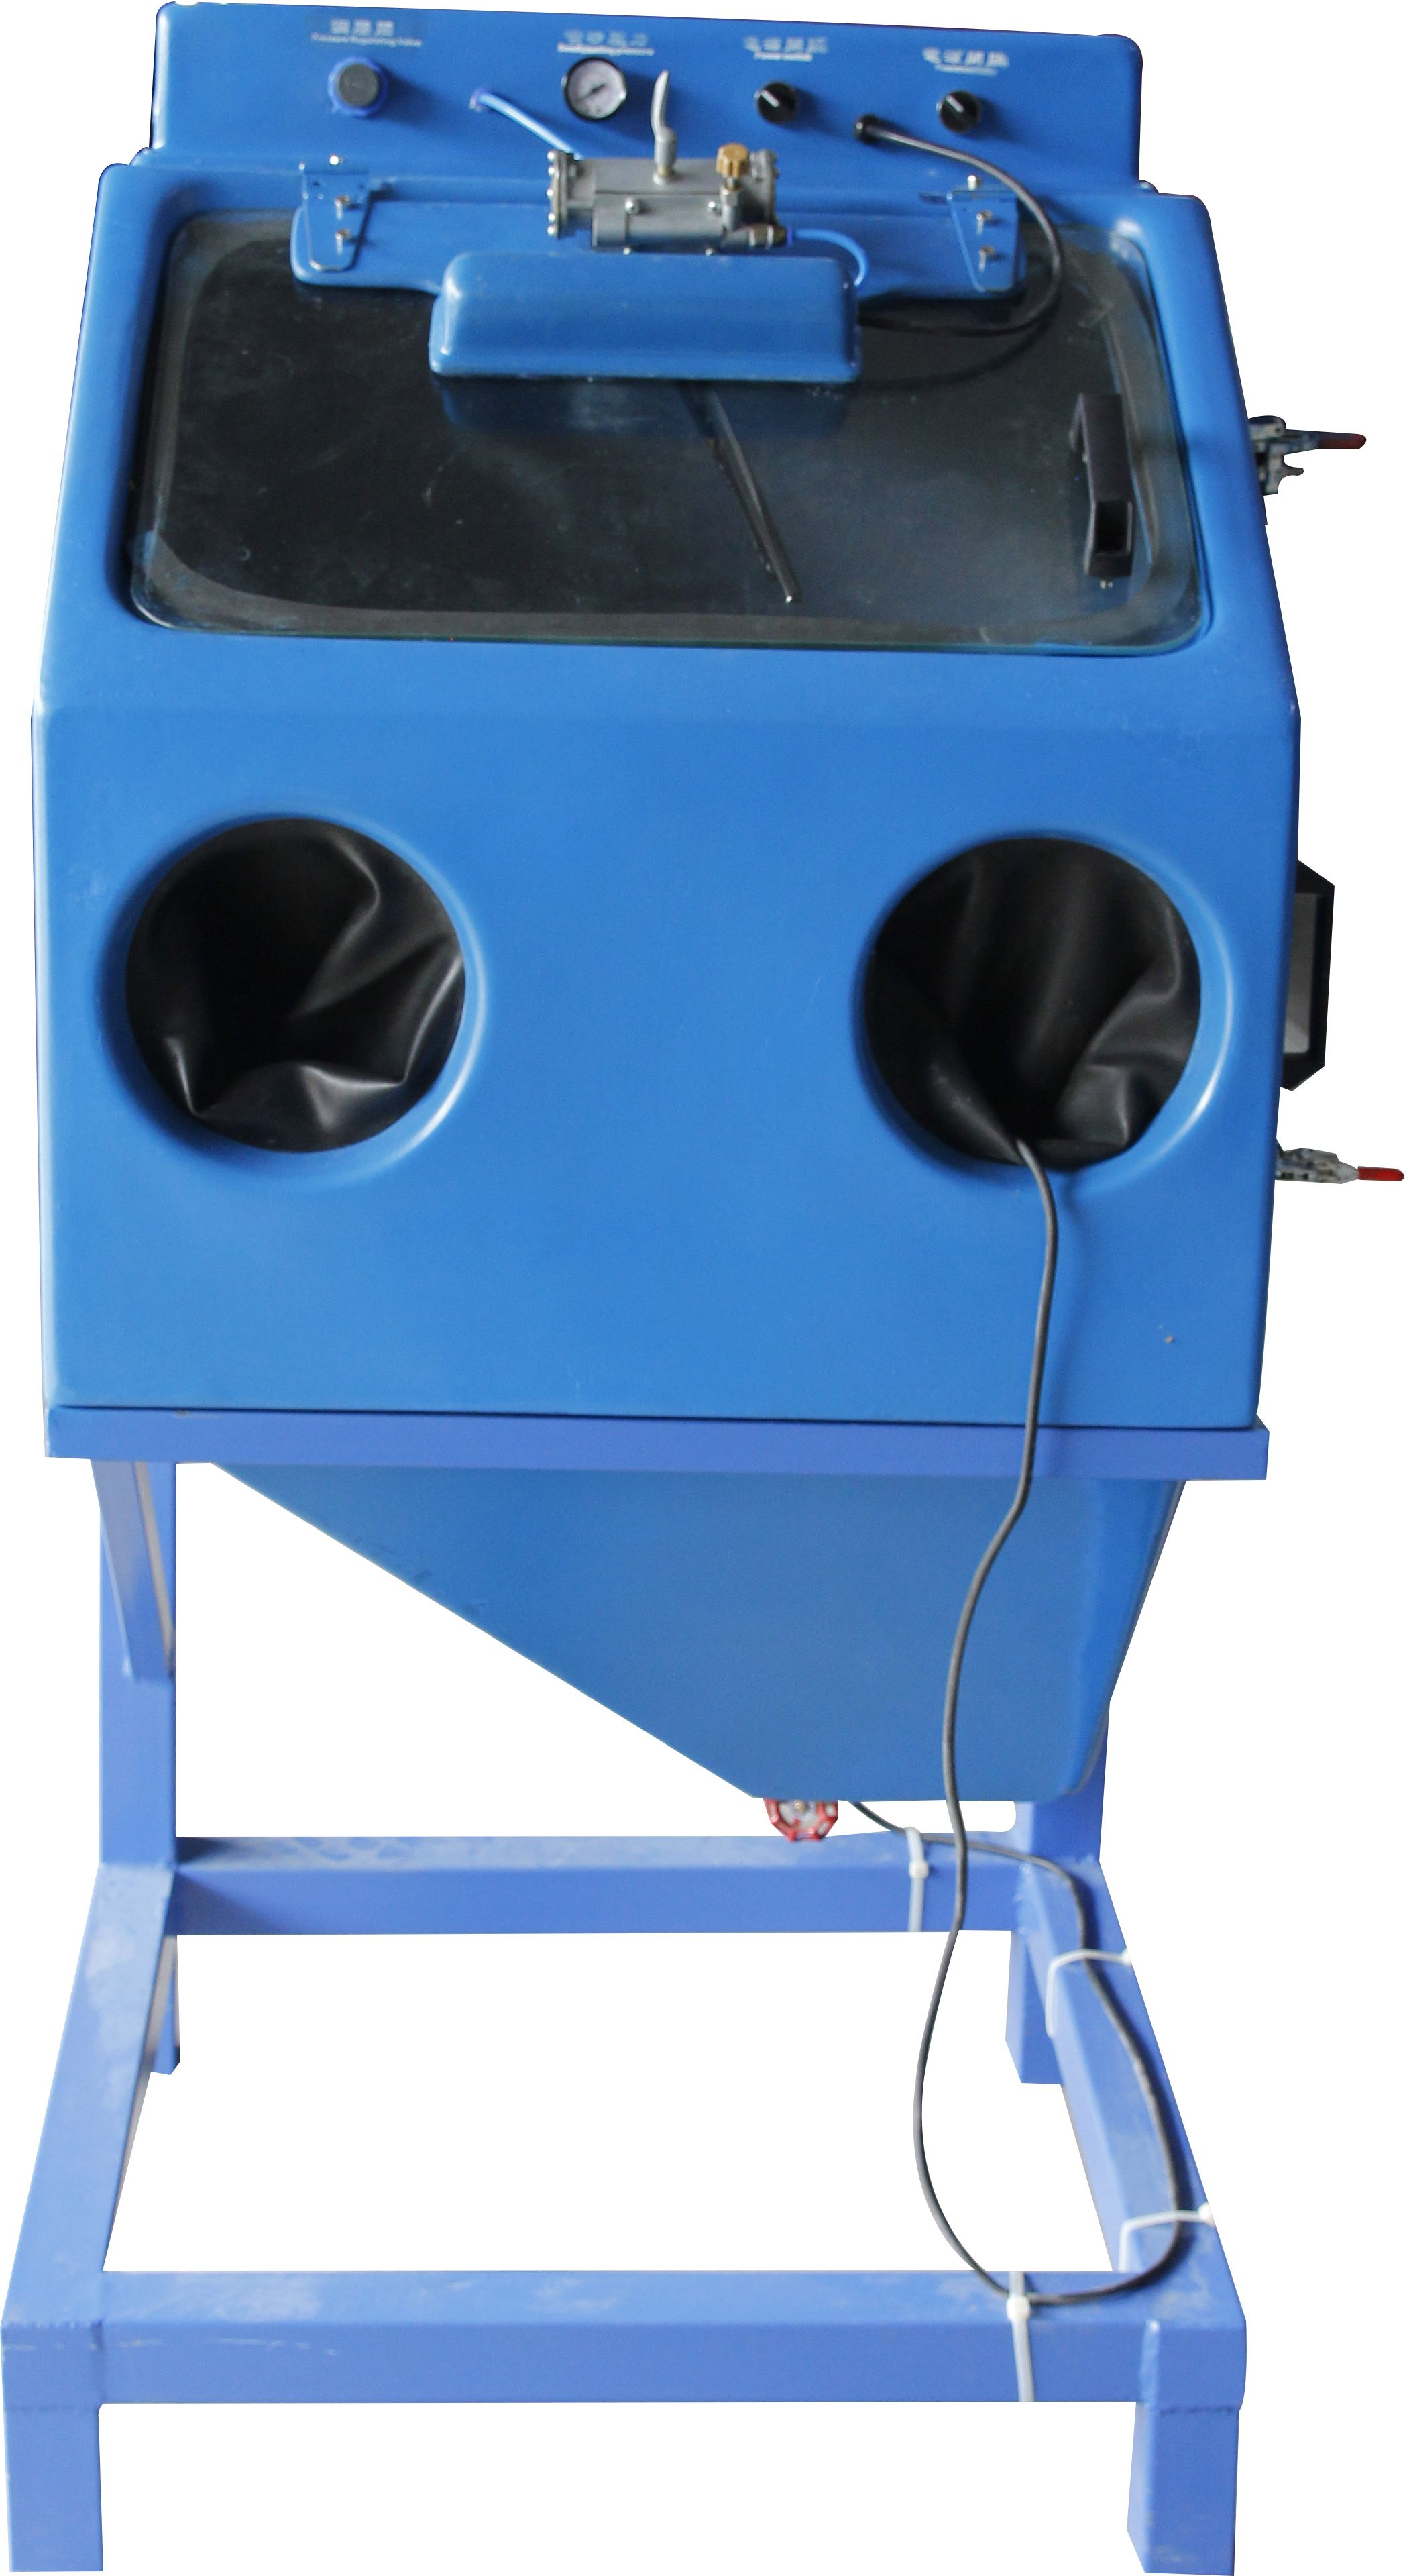 Wet blast cabinets use a slurry pump to produce a highly mixture of